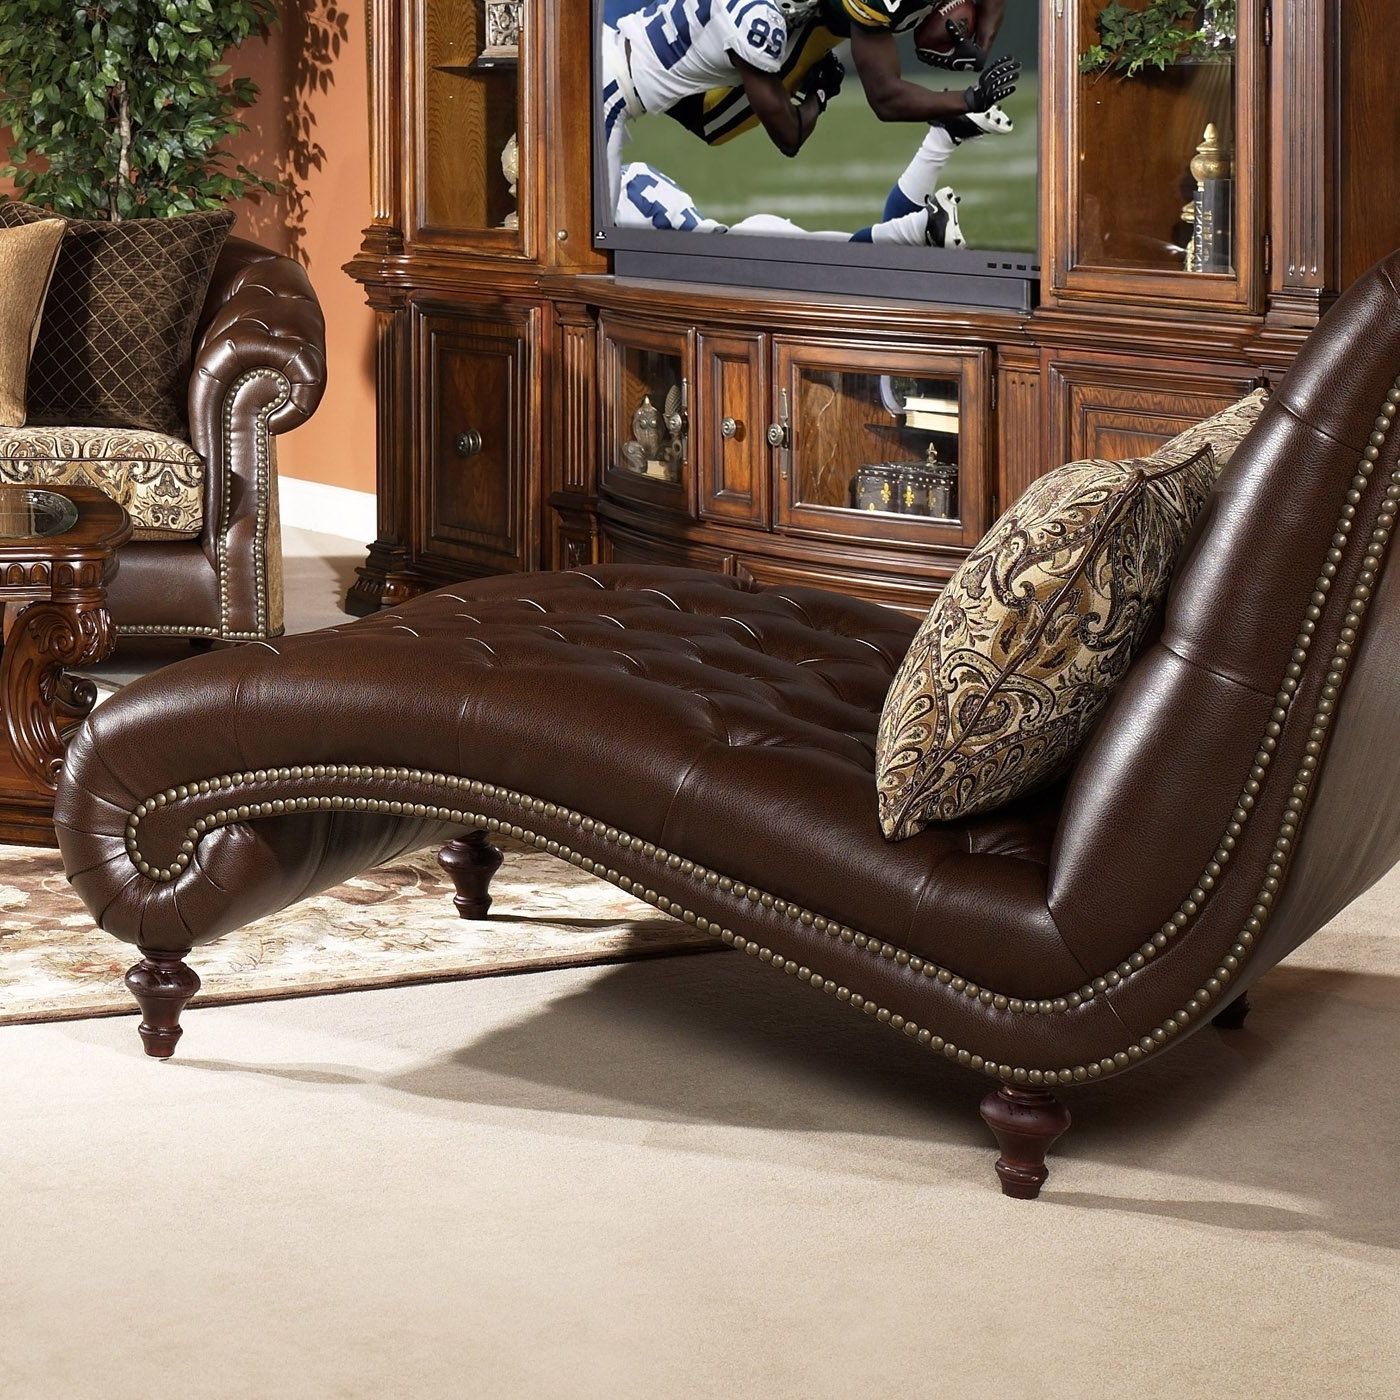 Fashionable Furniture (View 7 of 15)